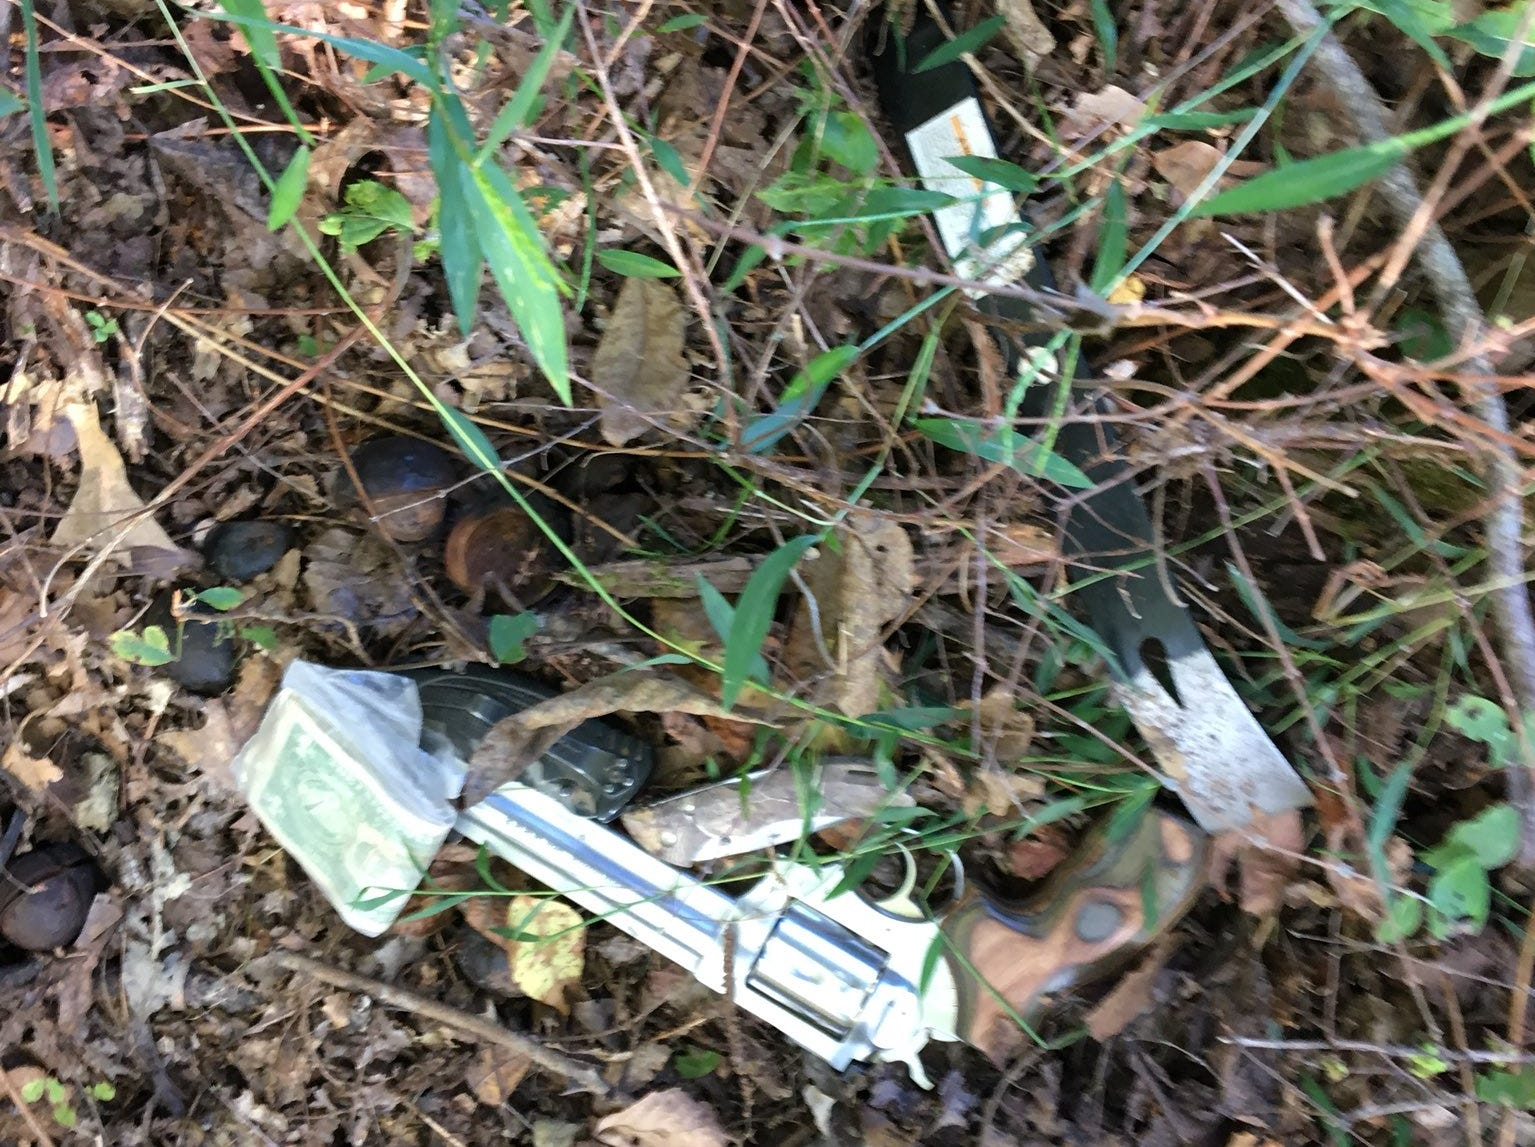 A gun, a crowbar and cash found during the arrest of Kirby Wallace.